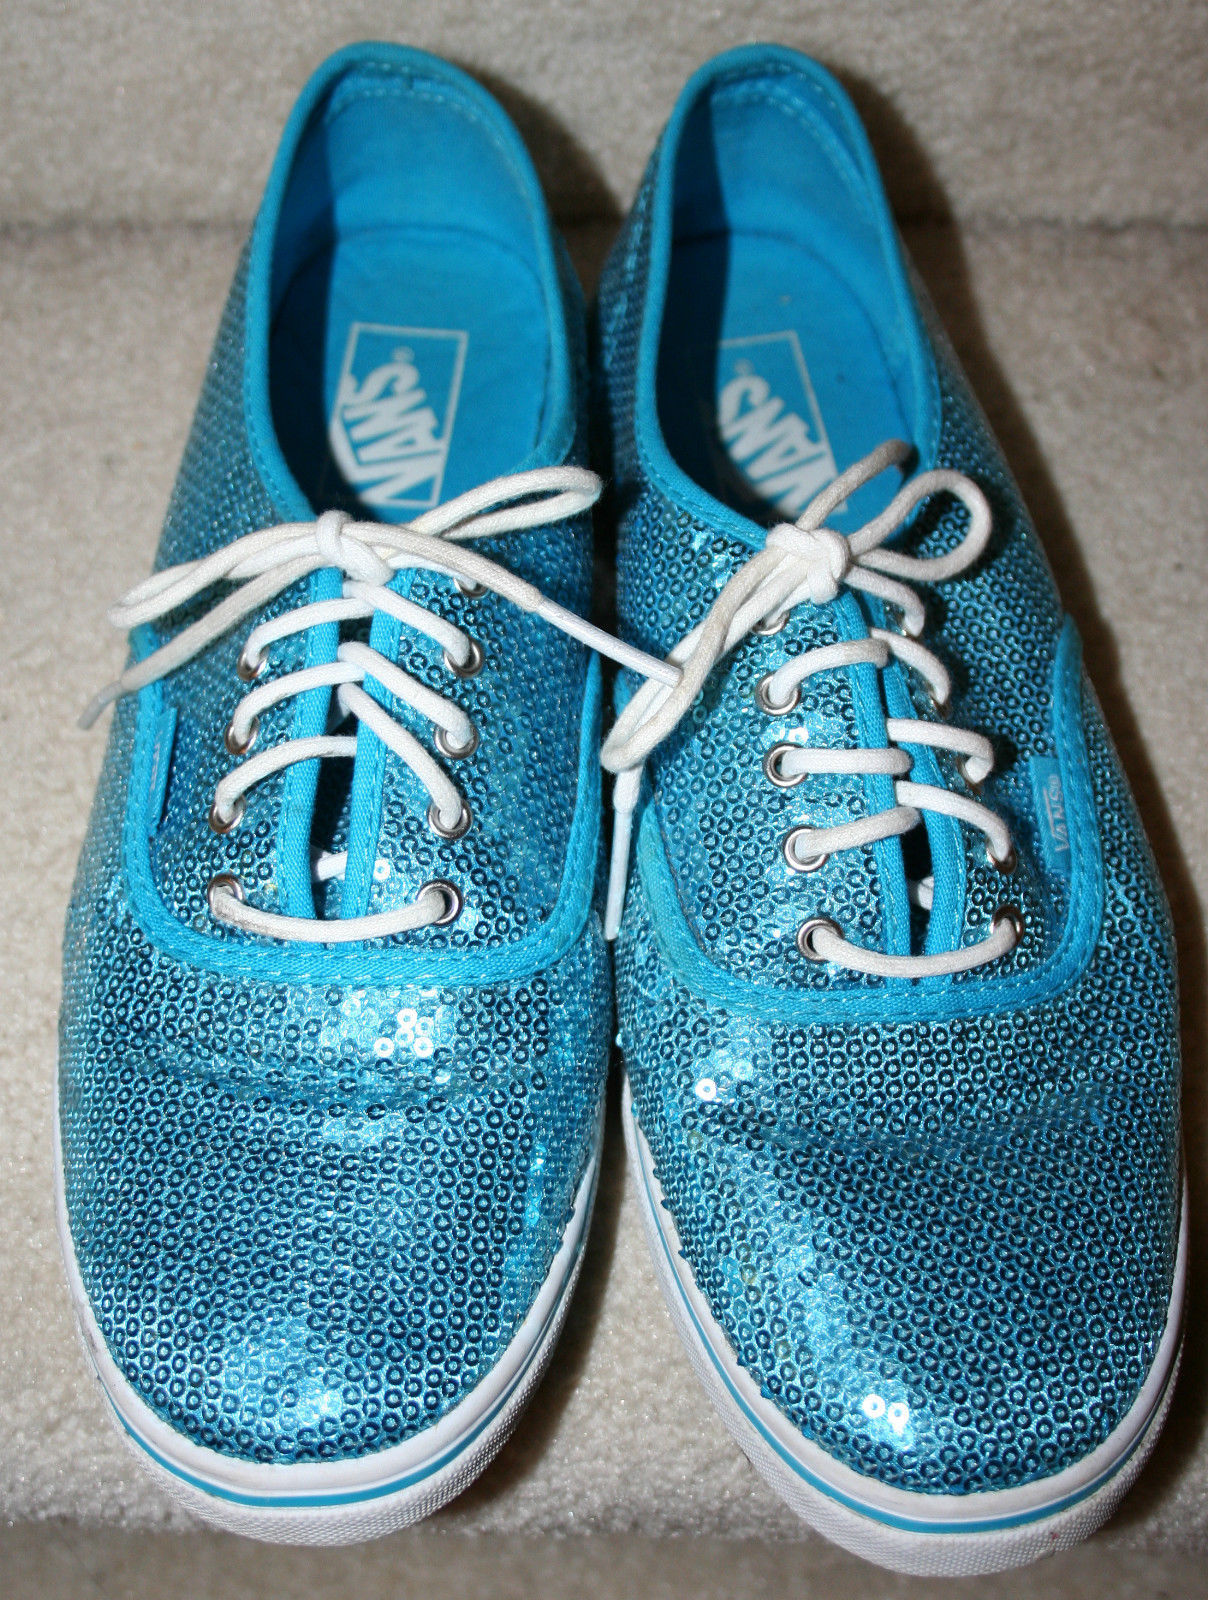 Van's Fashion Turquoise Sequins Tennis Shoes 10.5 1/2M Womens Athletic Flat Lace